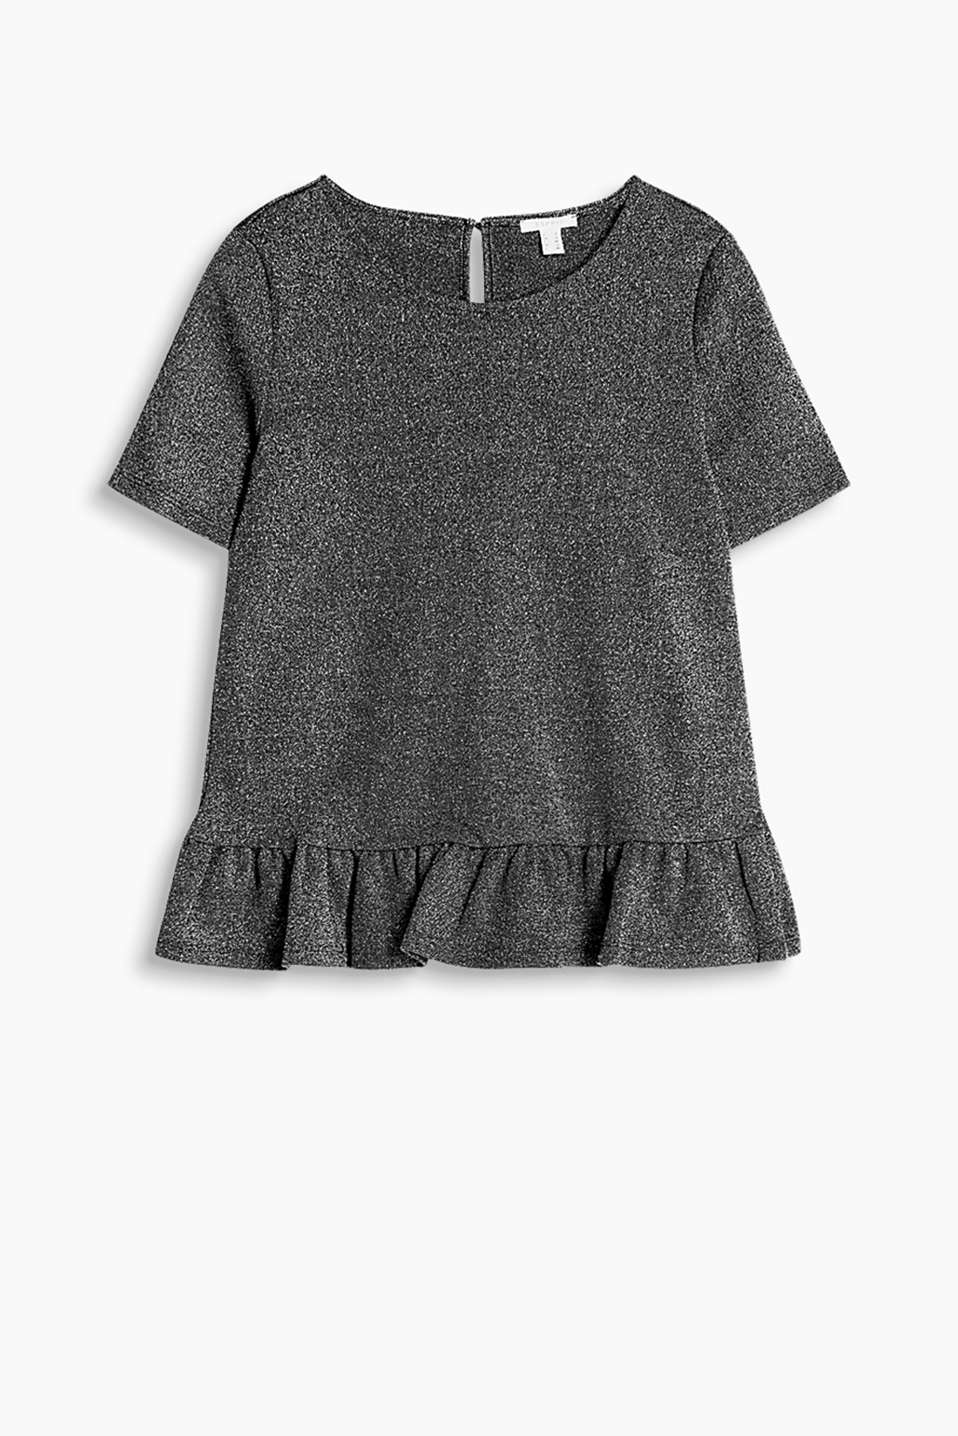 T-shirt in high-quality blended cotton with a peplum, a round neckline and a button-fastening back slit